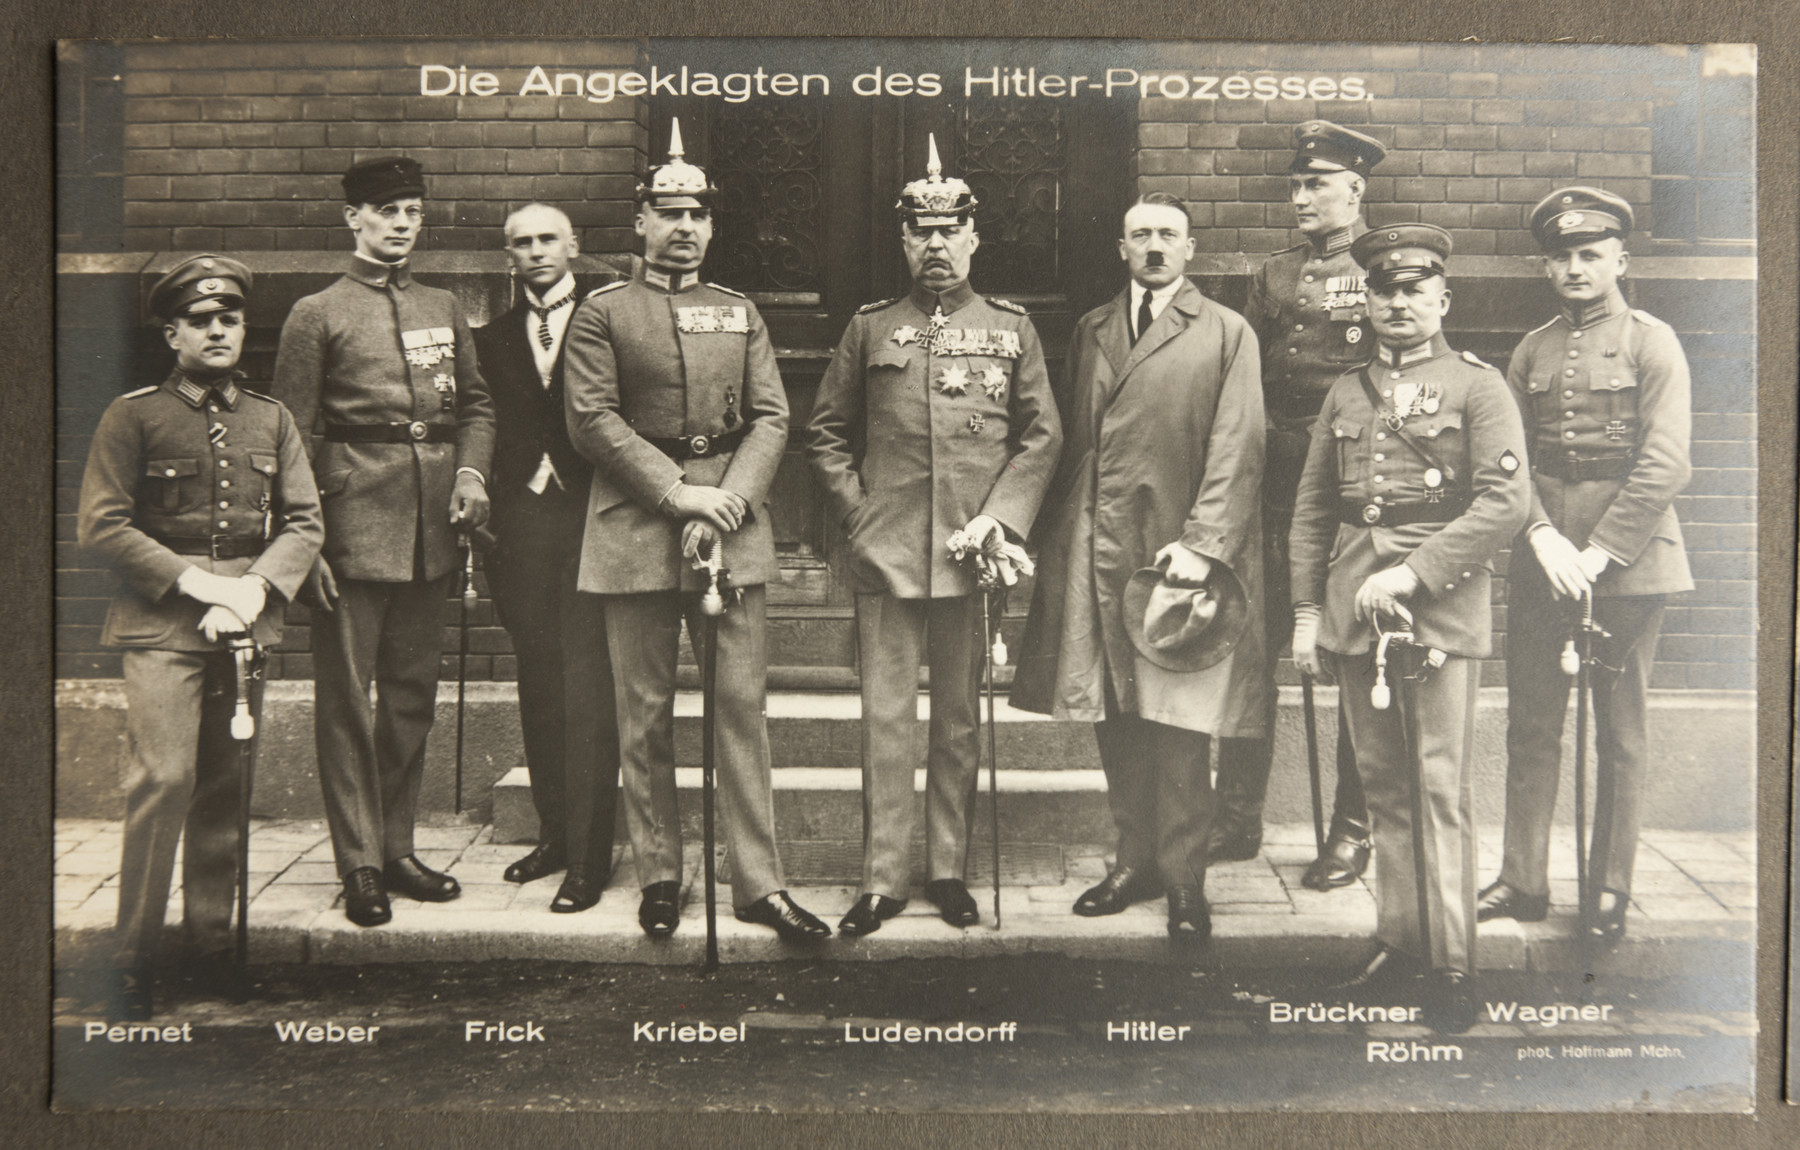 Adolf Hitler and his co-conspirators in the 1923 Beer Hall Putsch in Munich.